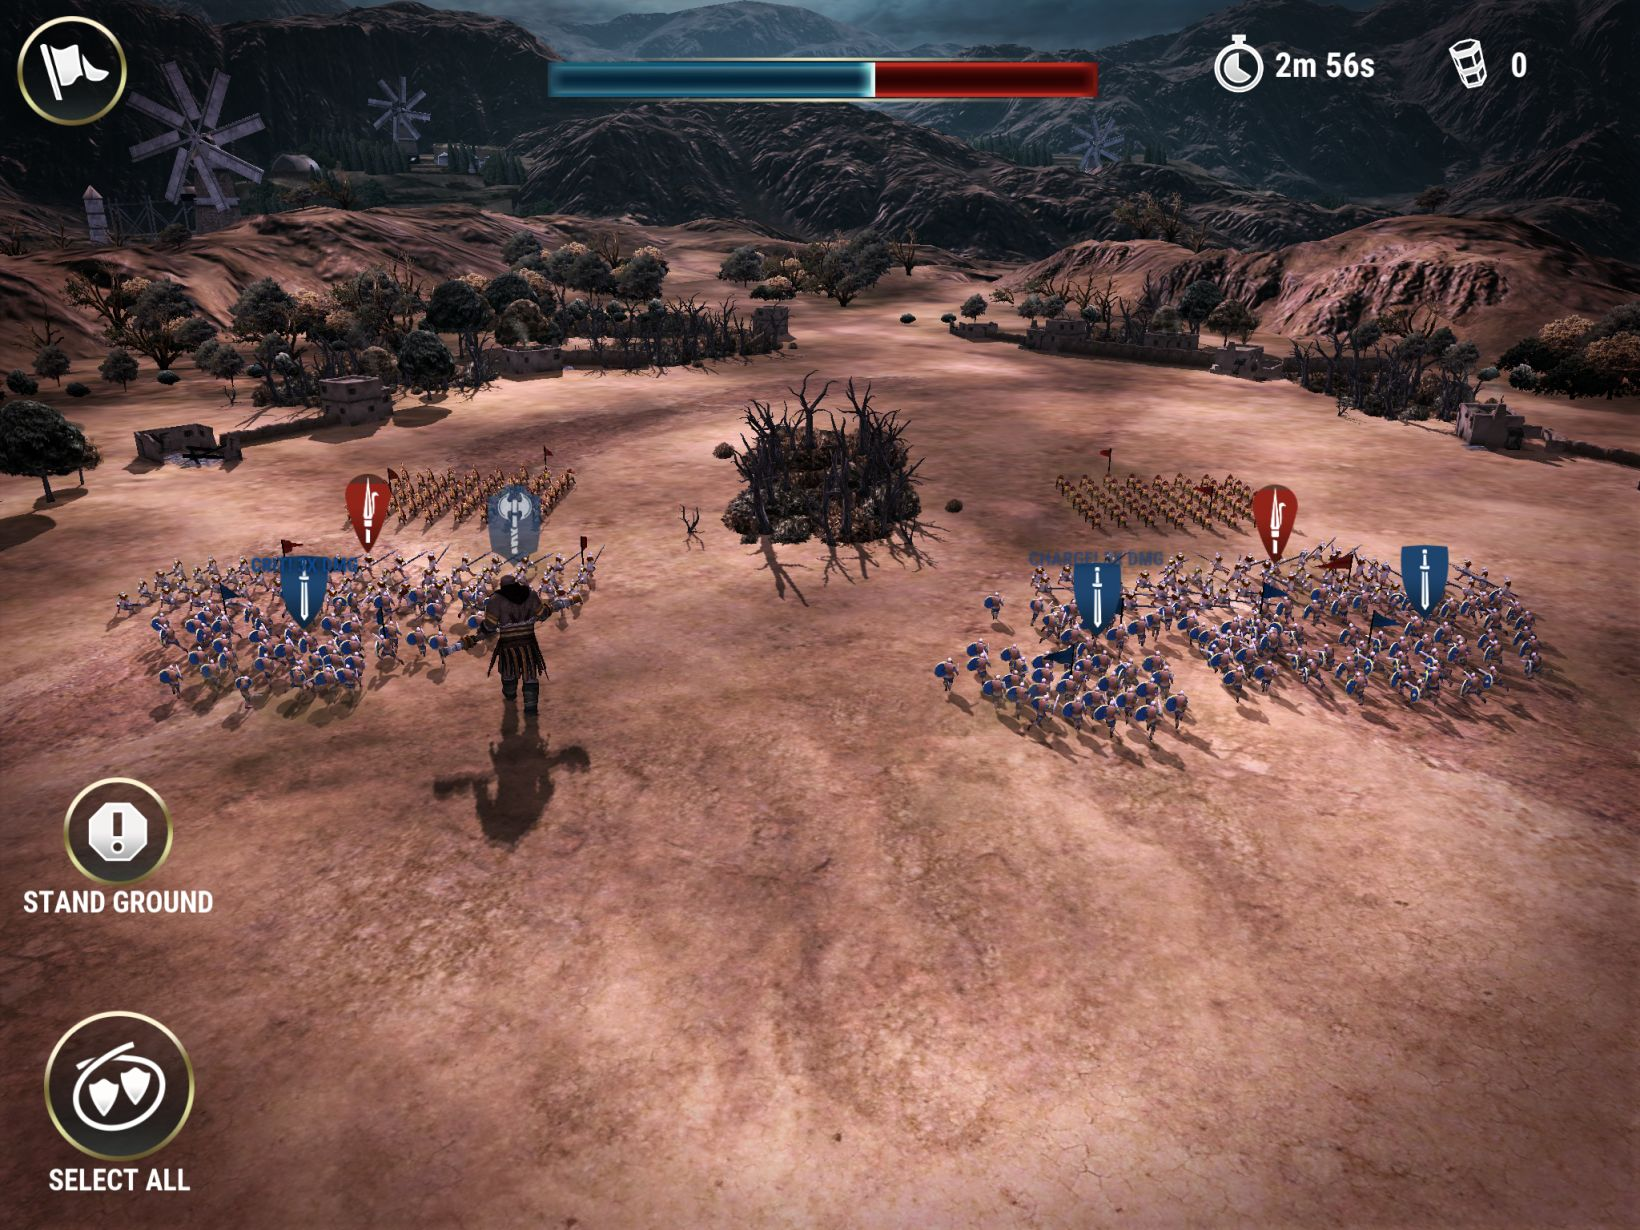 Dawn of Titans review - A casual RTS with a lot going for it